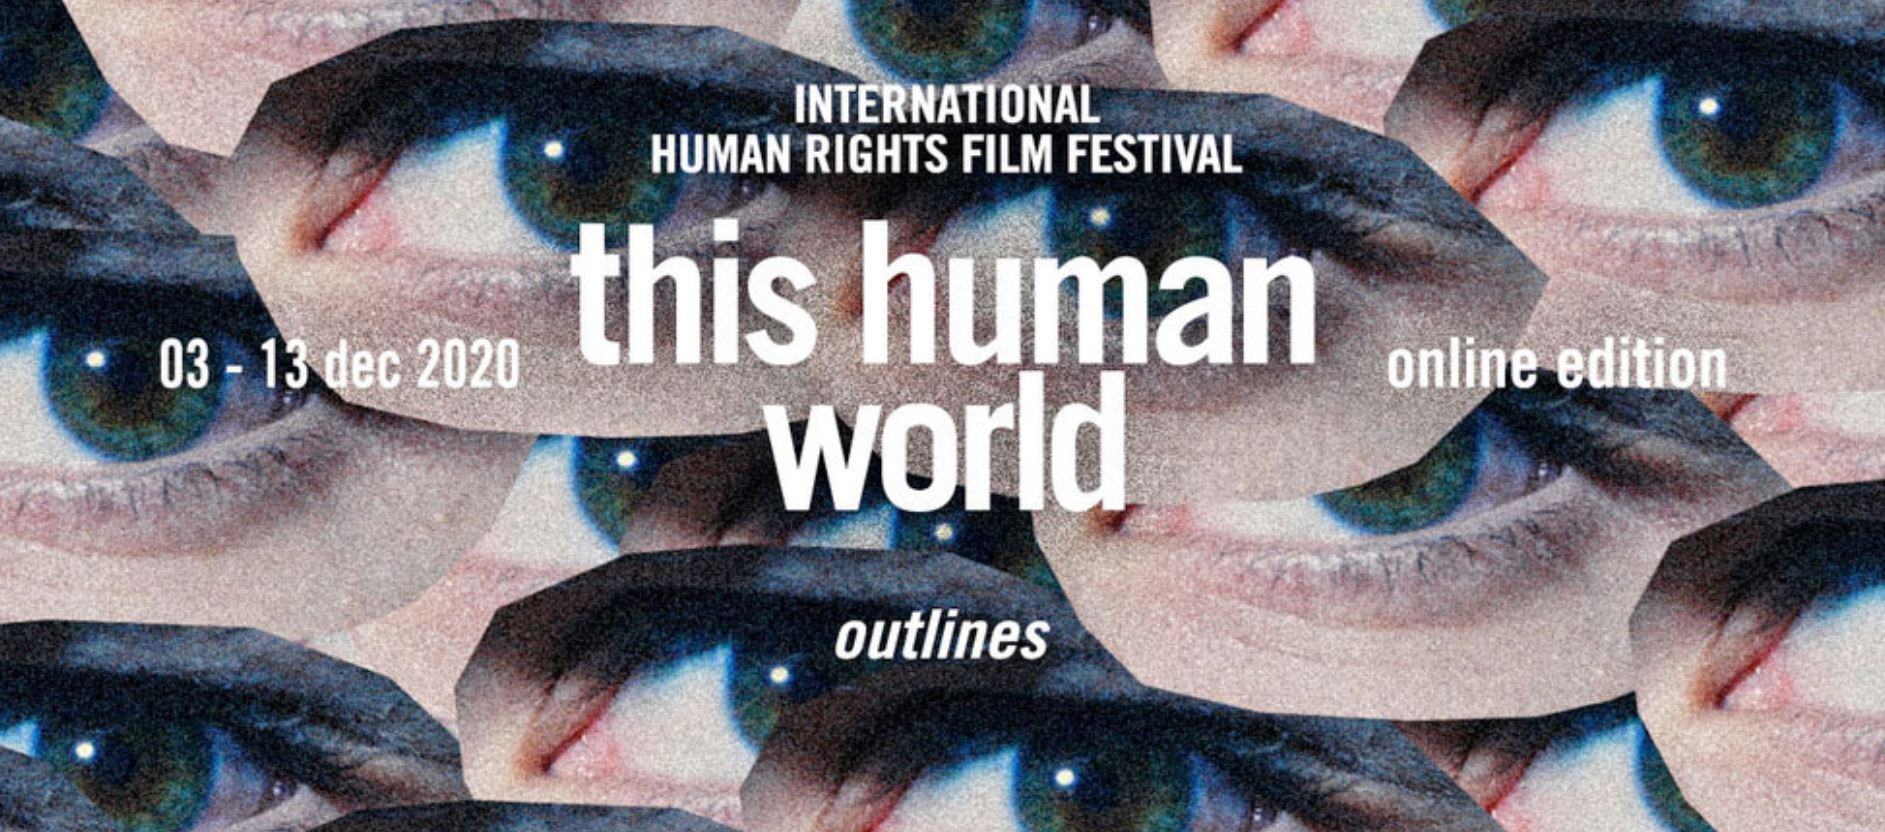 this human world outlines - online edition Filmfestival 2020 am 3. December 2020 @ Online-Event.